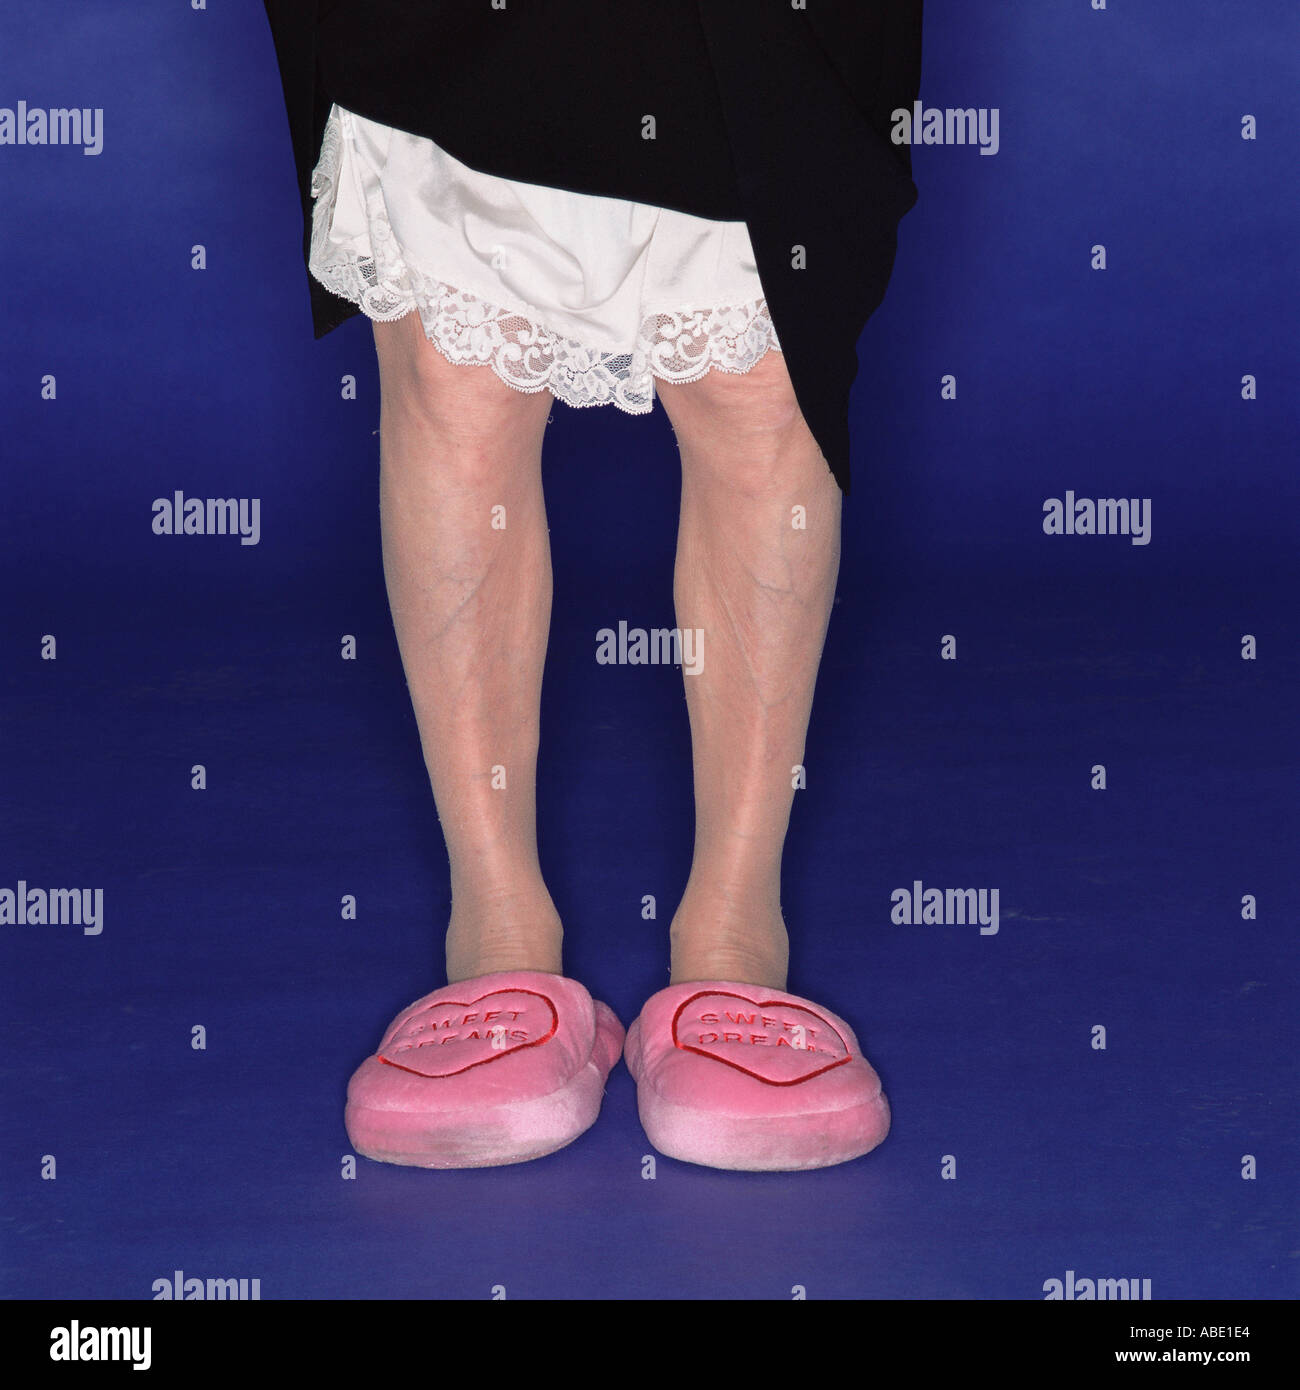 Grandmother in comfy pink slippers - Stock Image